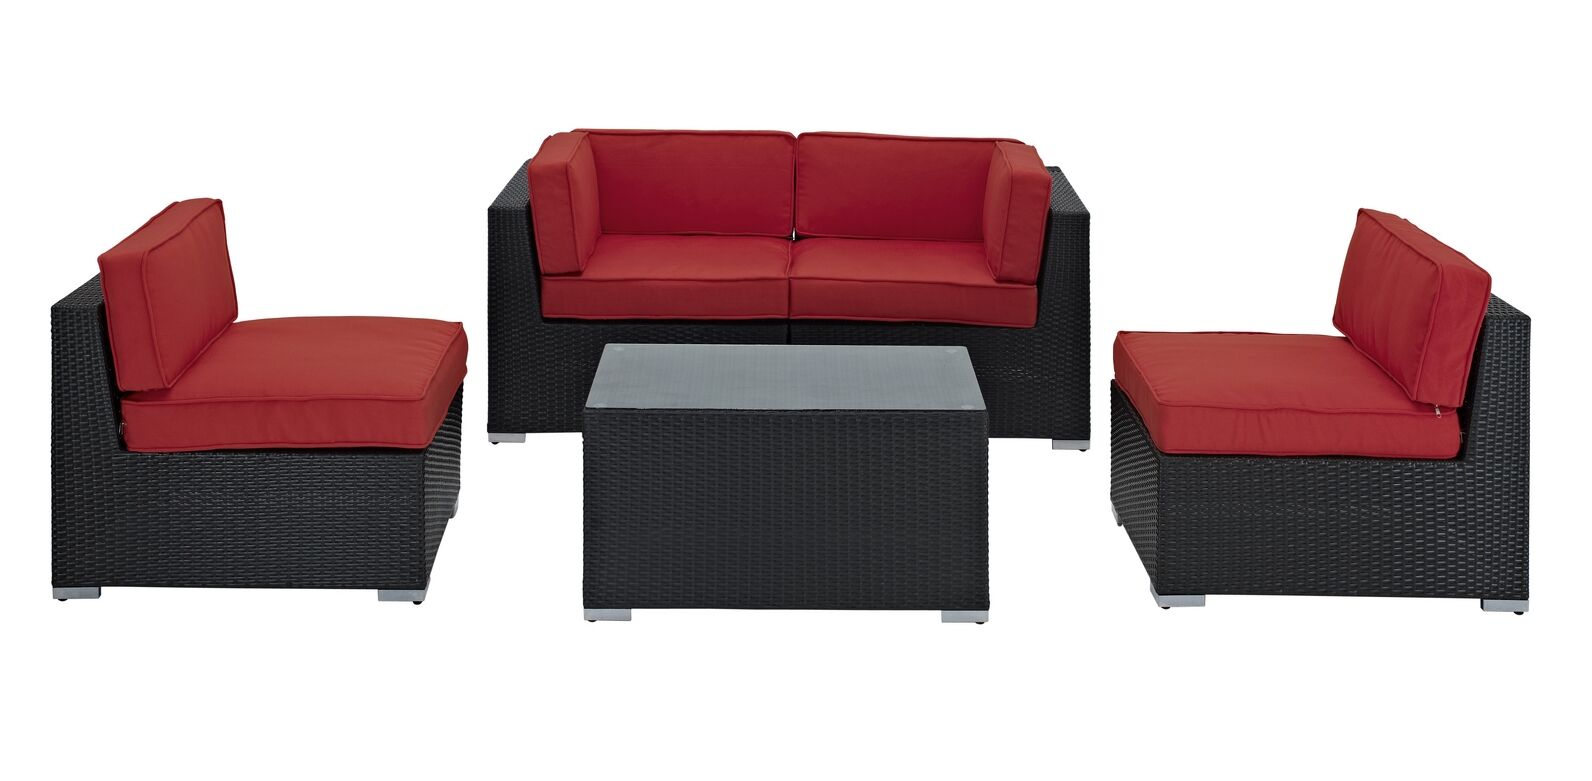 Delight 5 Piece Rattan Sofa Set with Cushions Fabric: Red